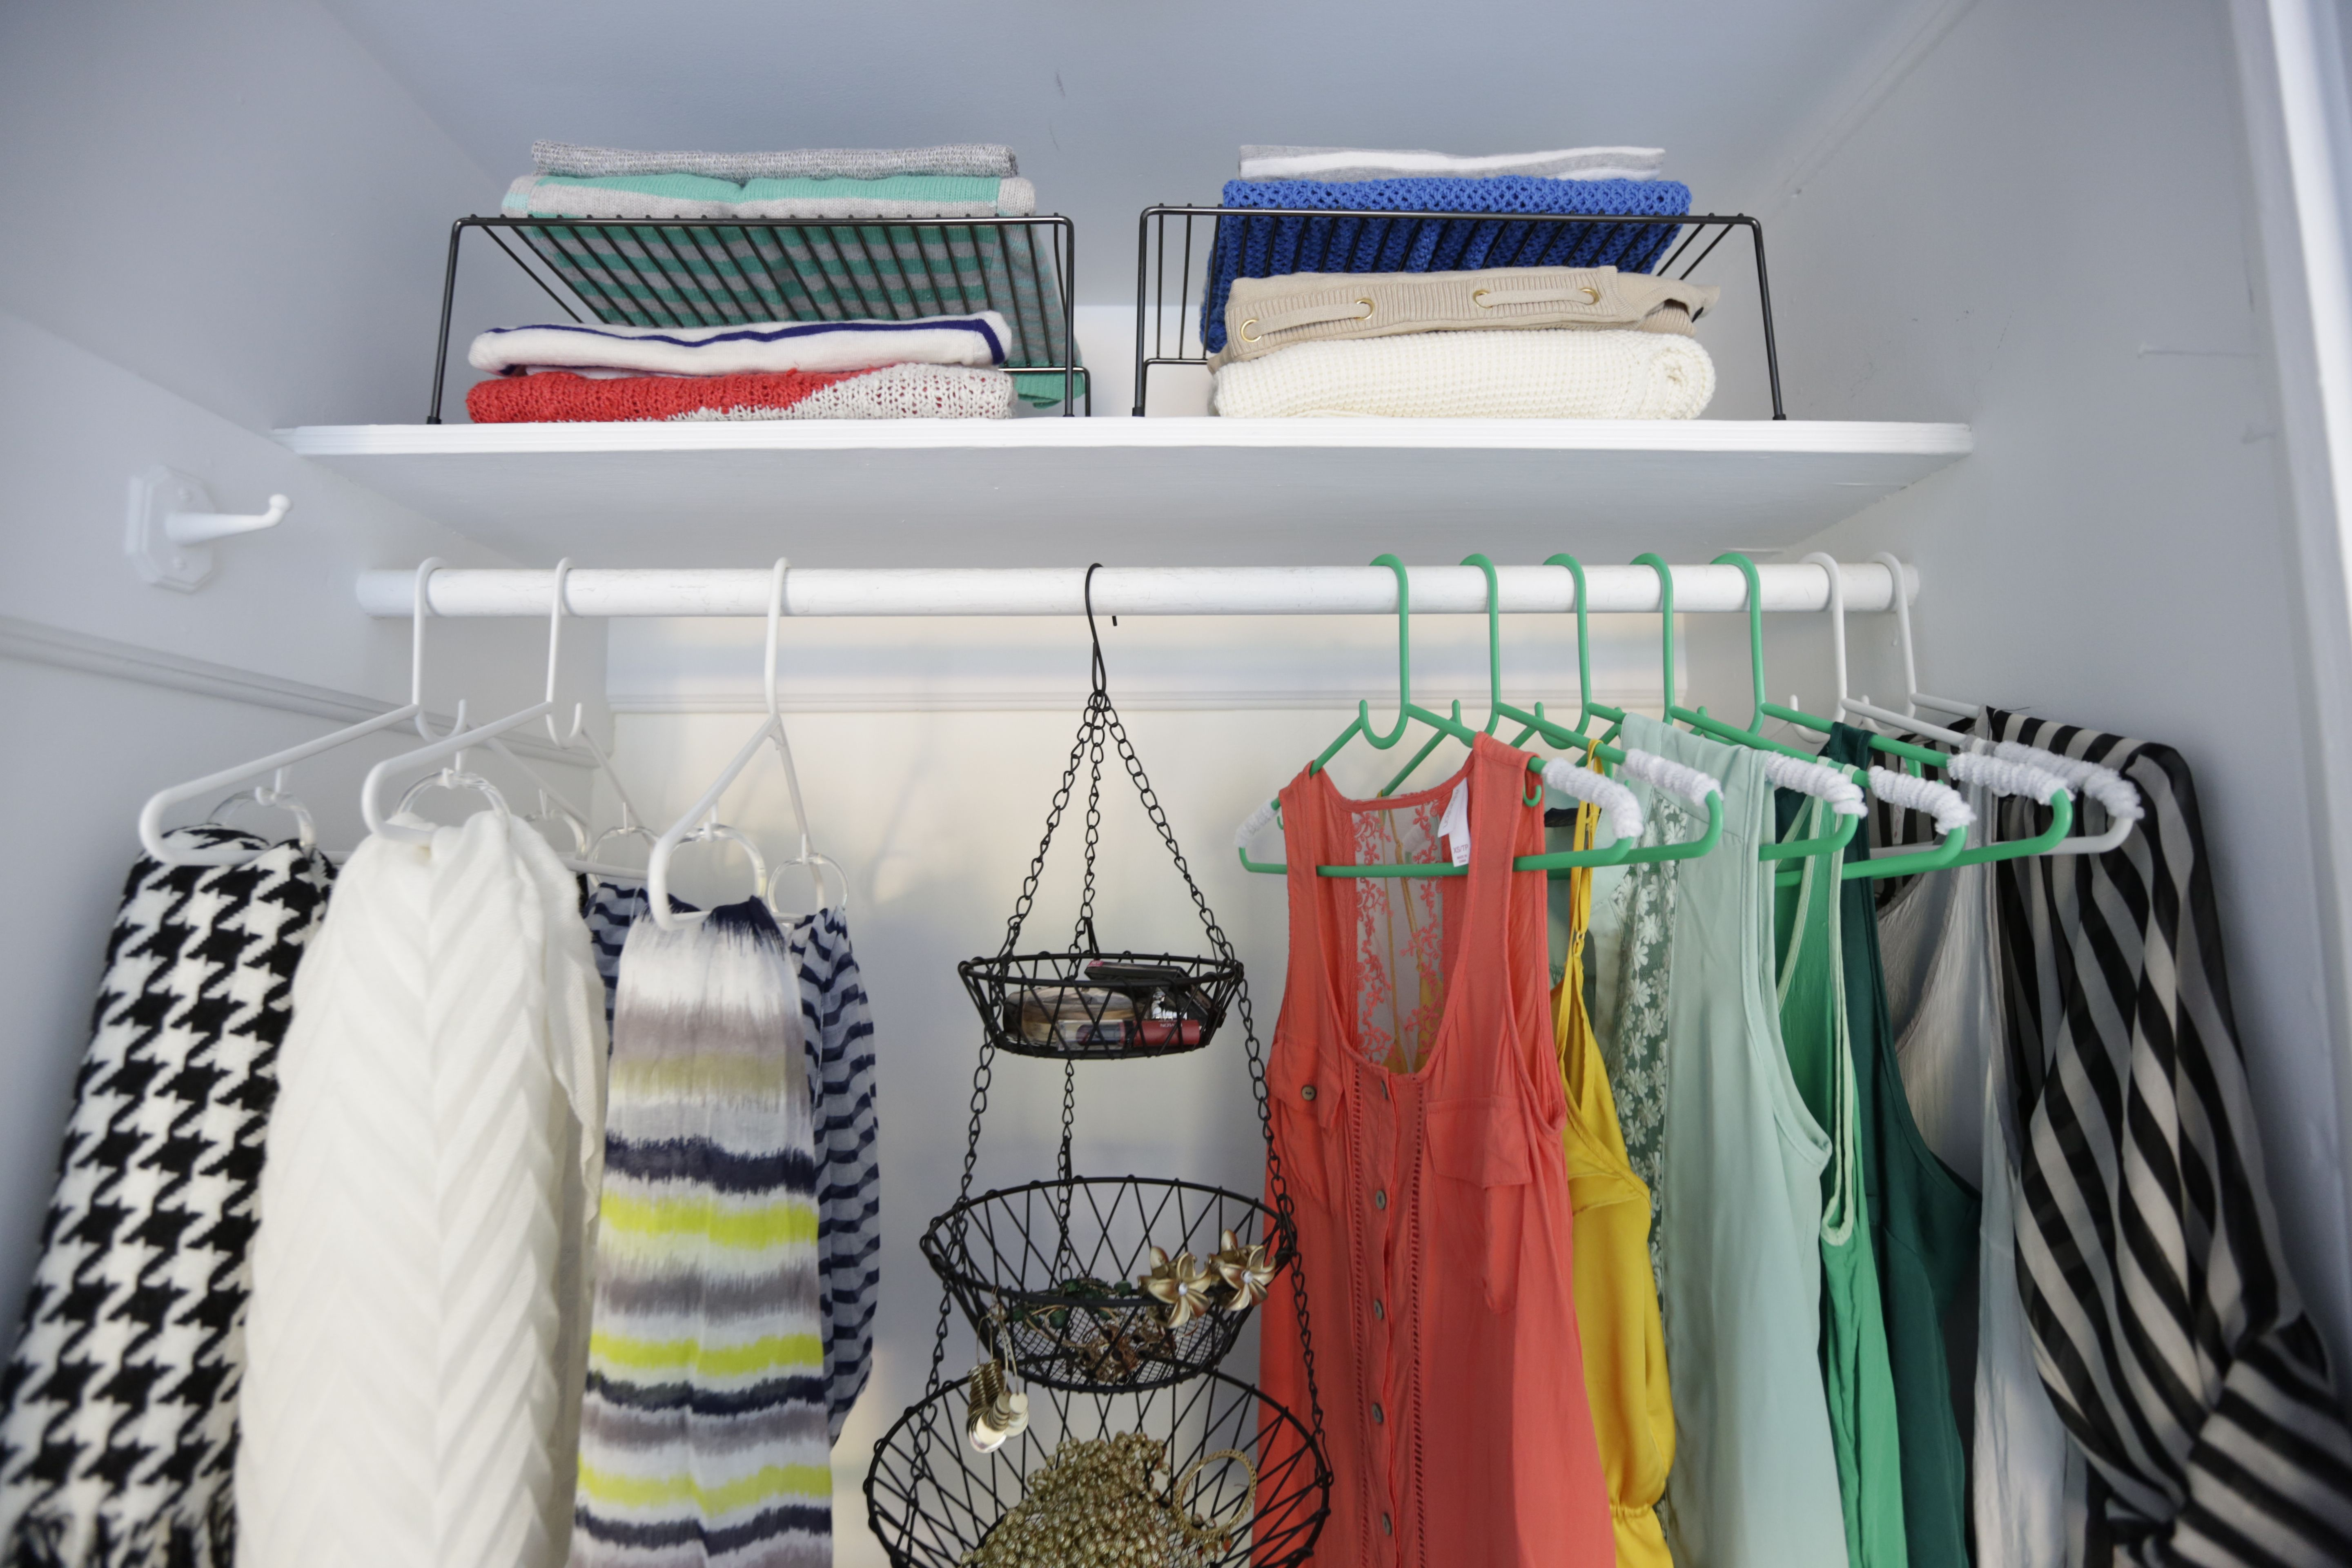 diy shelving closet installing makeover to around shelves wire wrap kitchen removing redesign for pantry wood